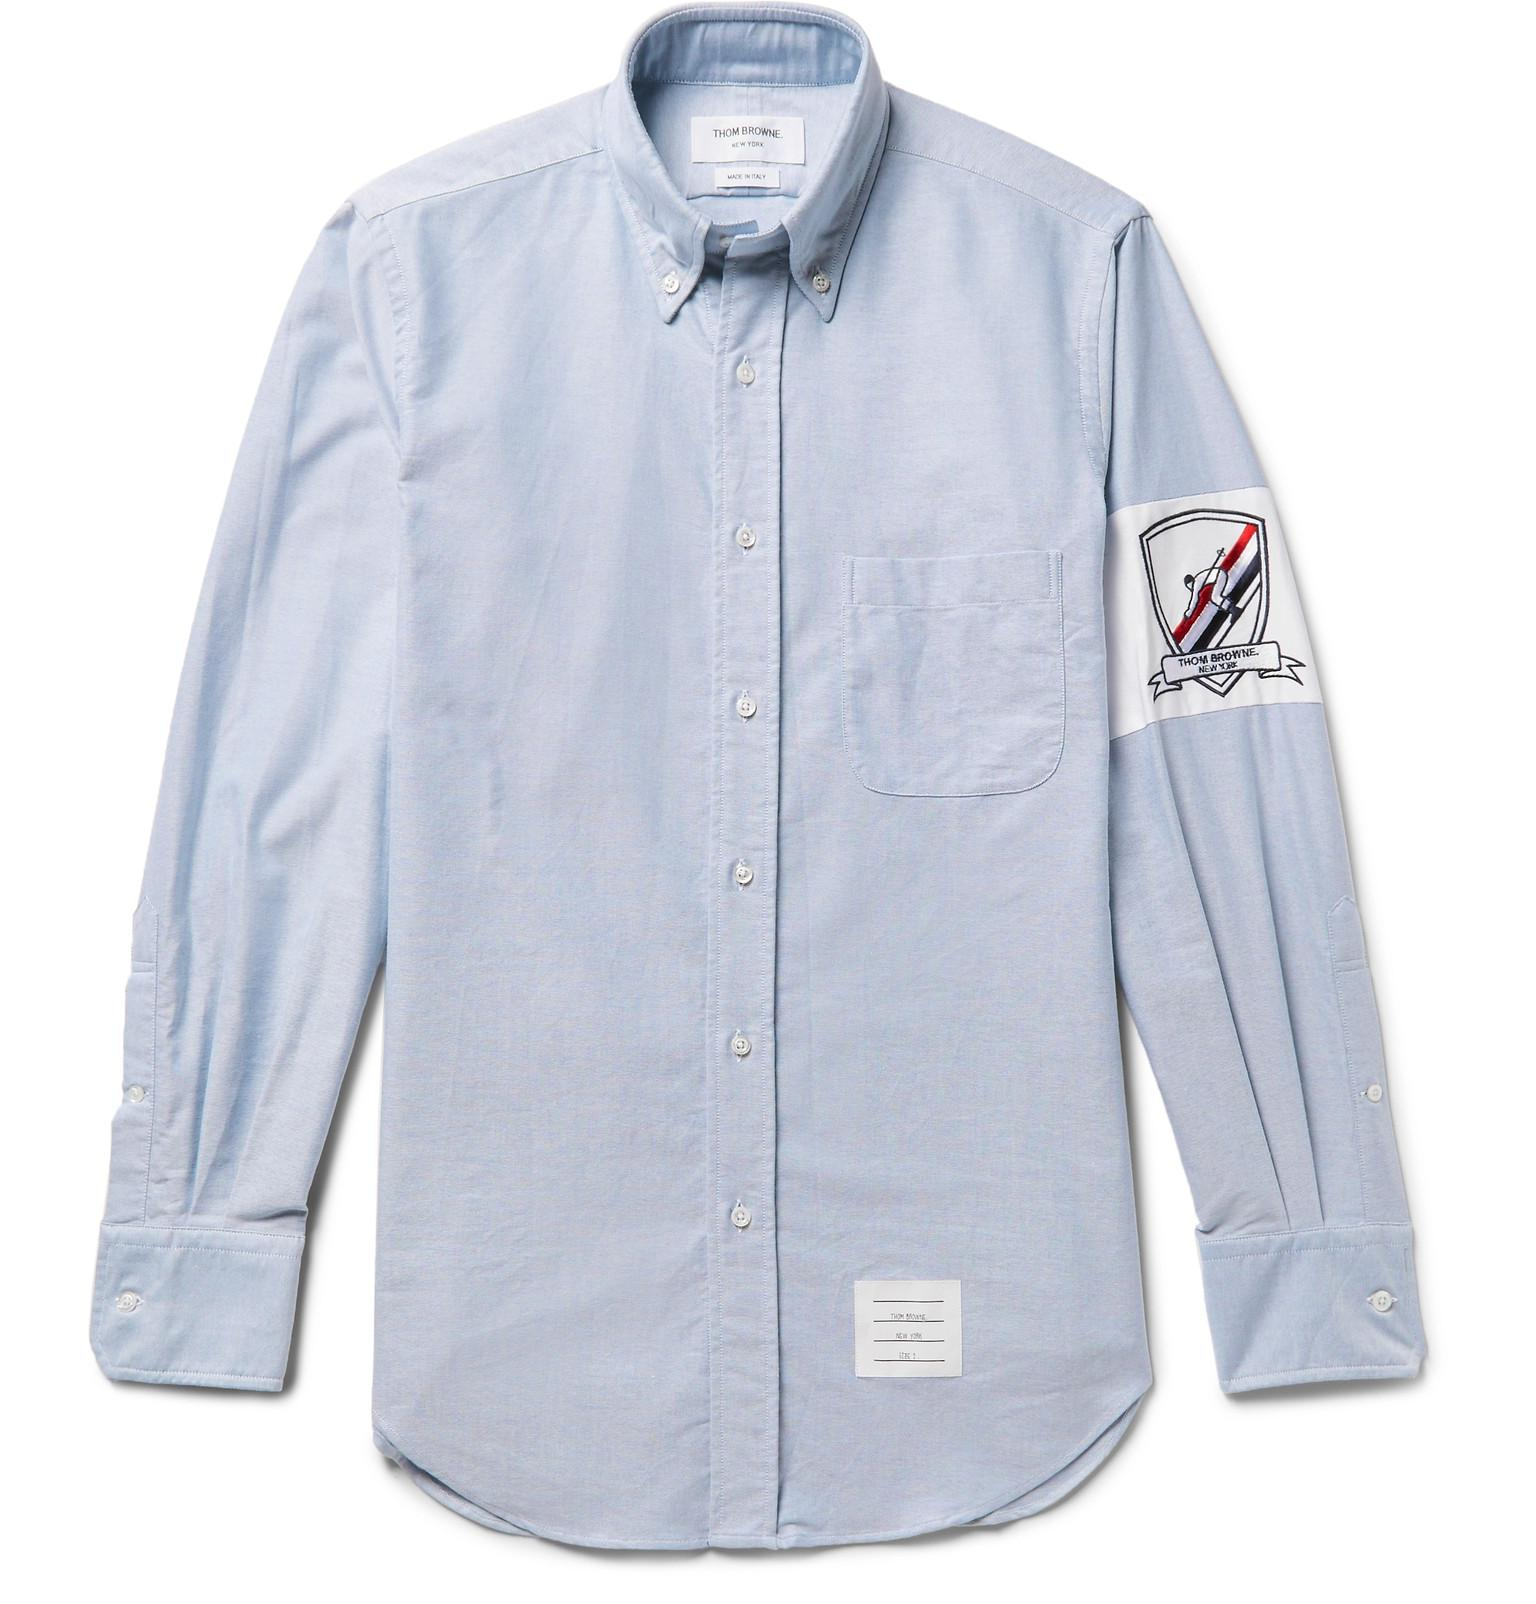 fd106529d9a3 Thom Browne Slim-fit Button-down Collar Embroidered Cotton Oxford ...